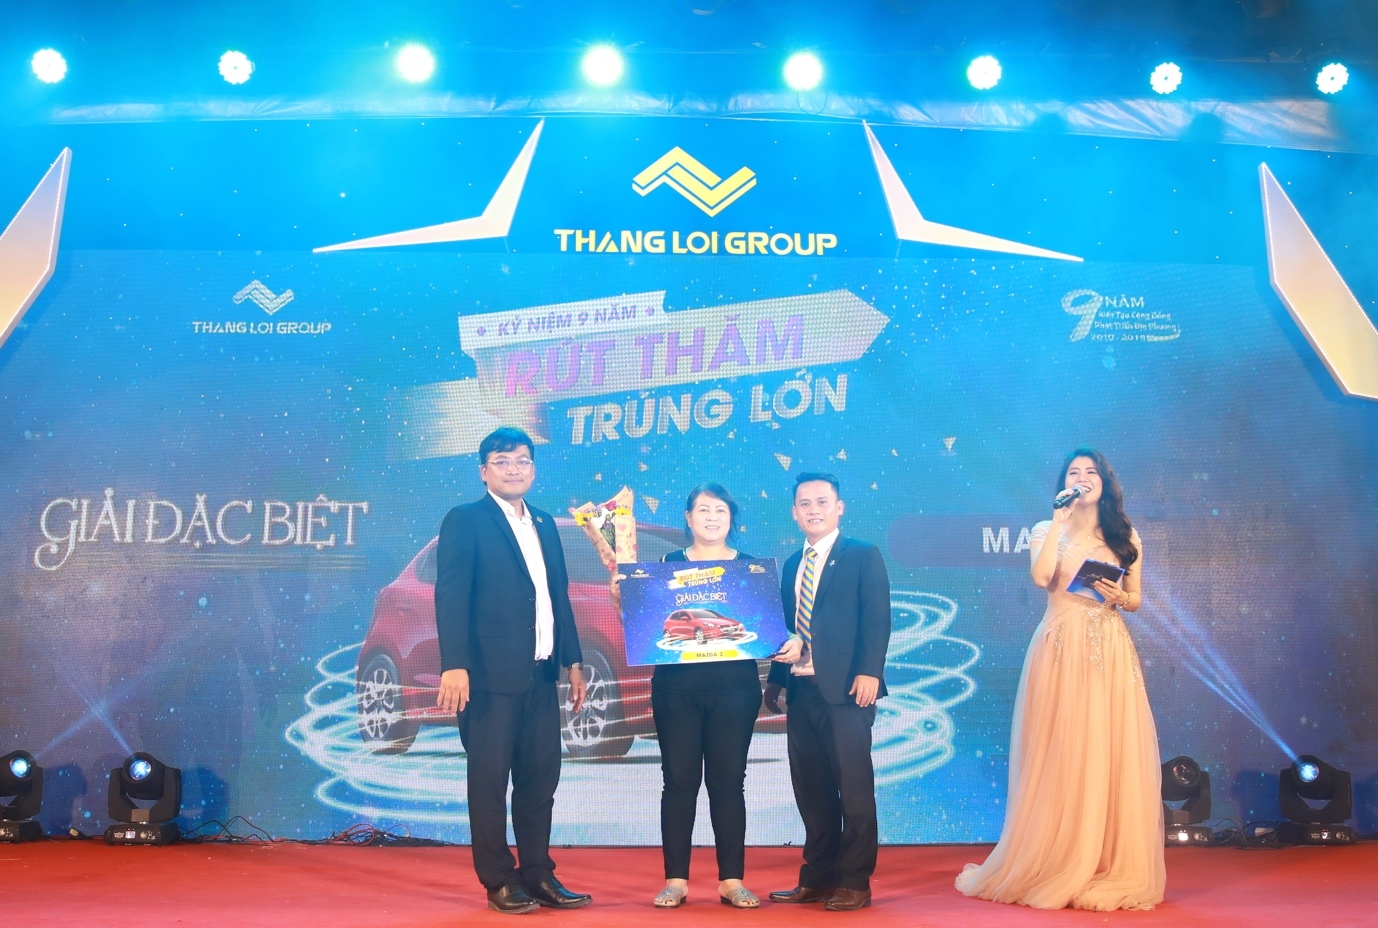 thang loi group ky niem 9 nam voi loat thanh tuu an tuong